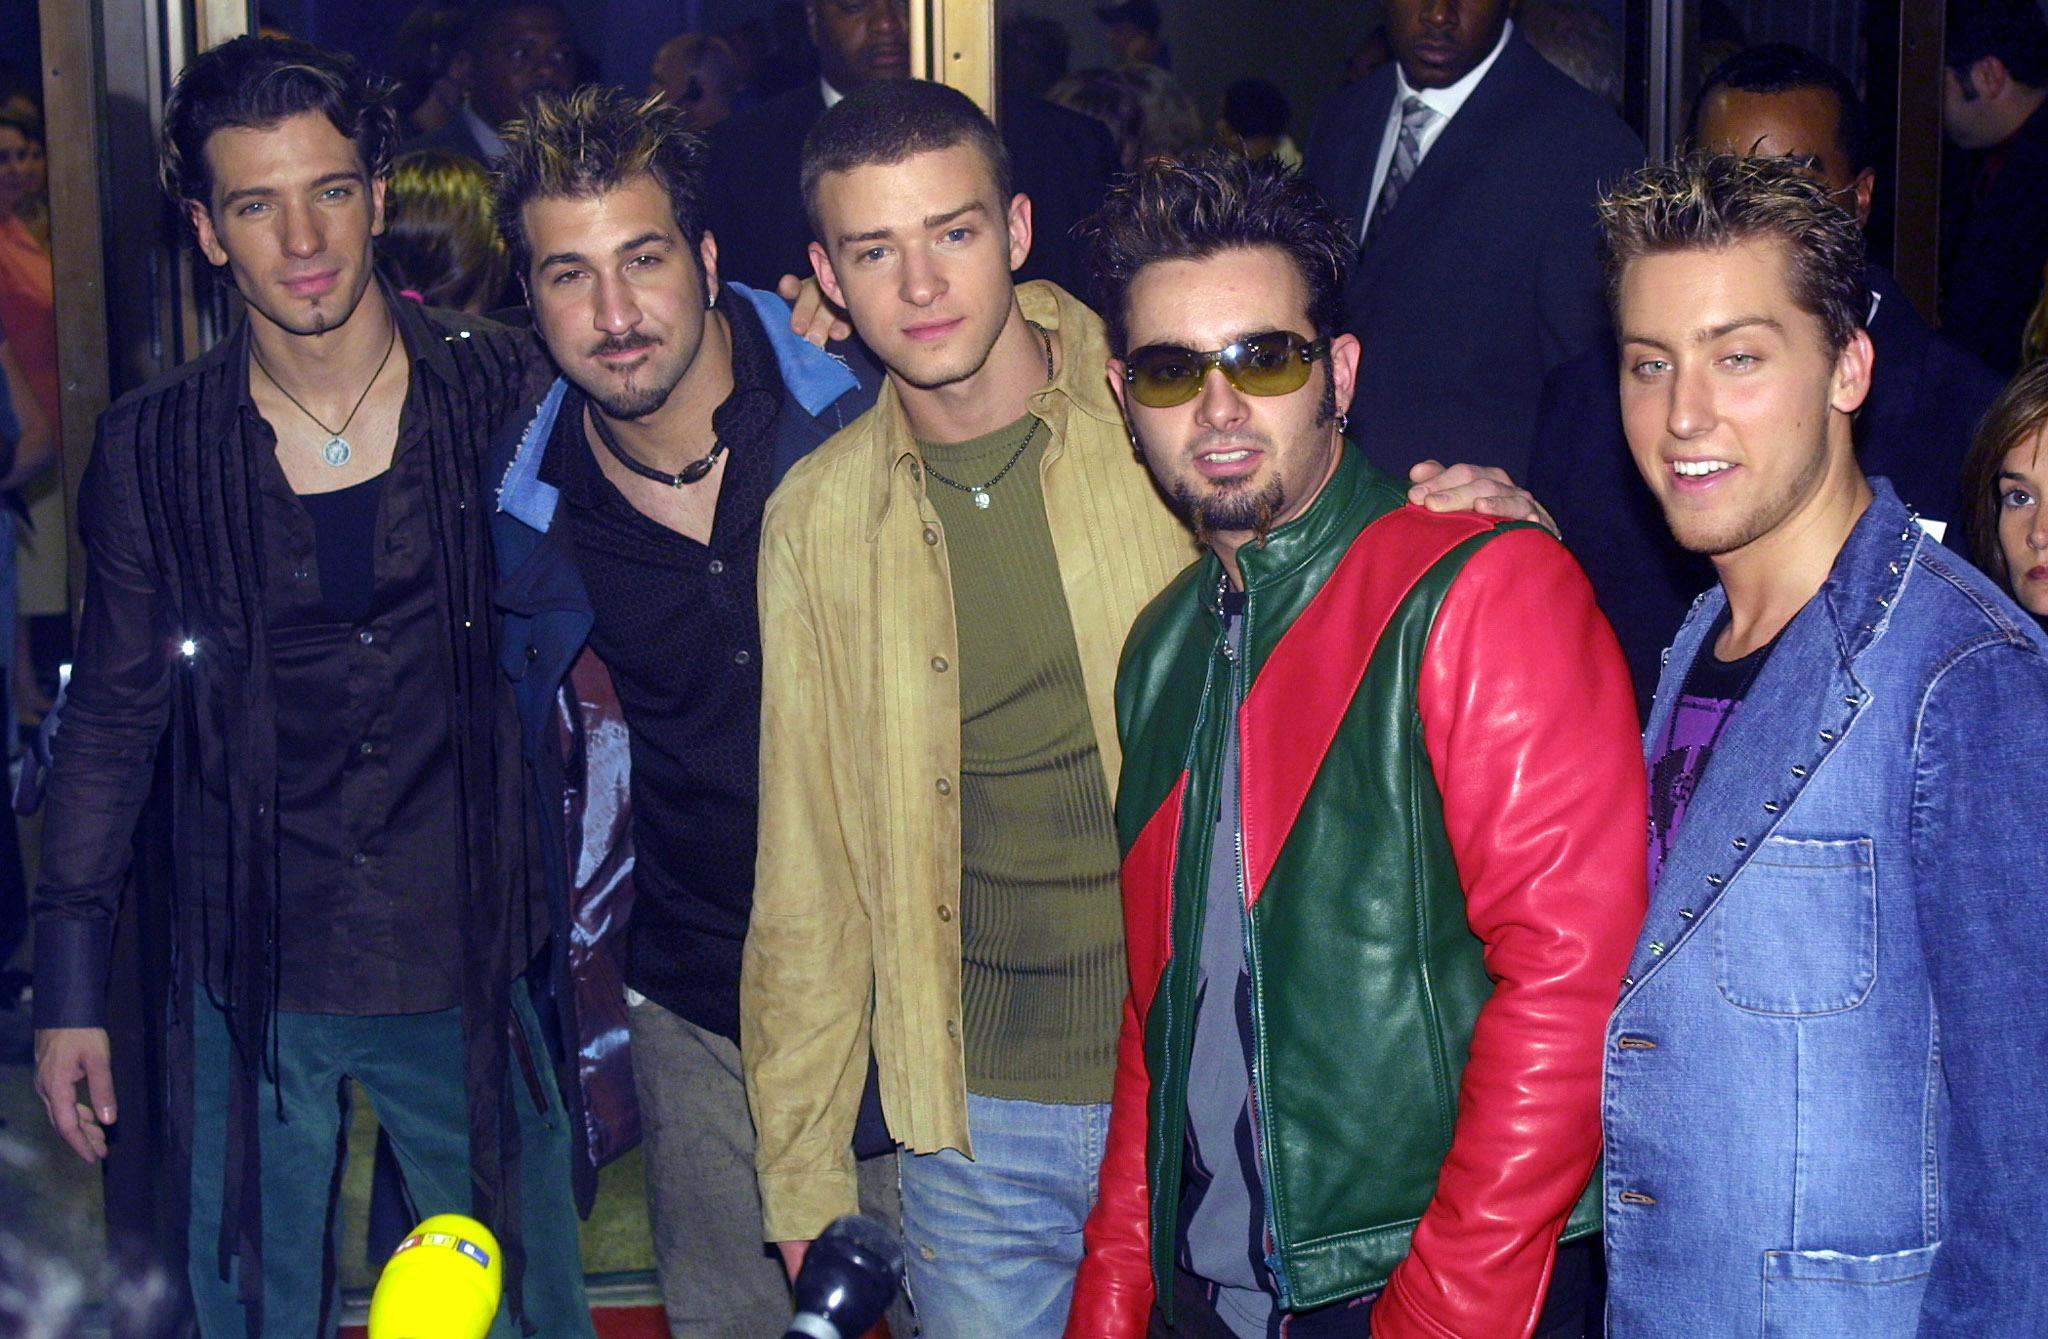 24 nsync merry christmas happy holidays video questions that may never be answered - Merry Christmas Happy Holidays Nsync